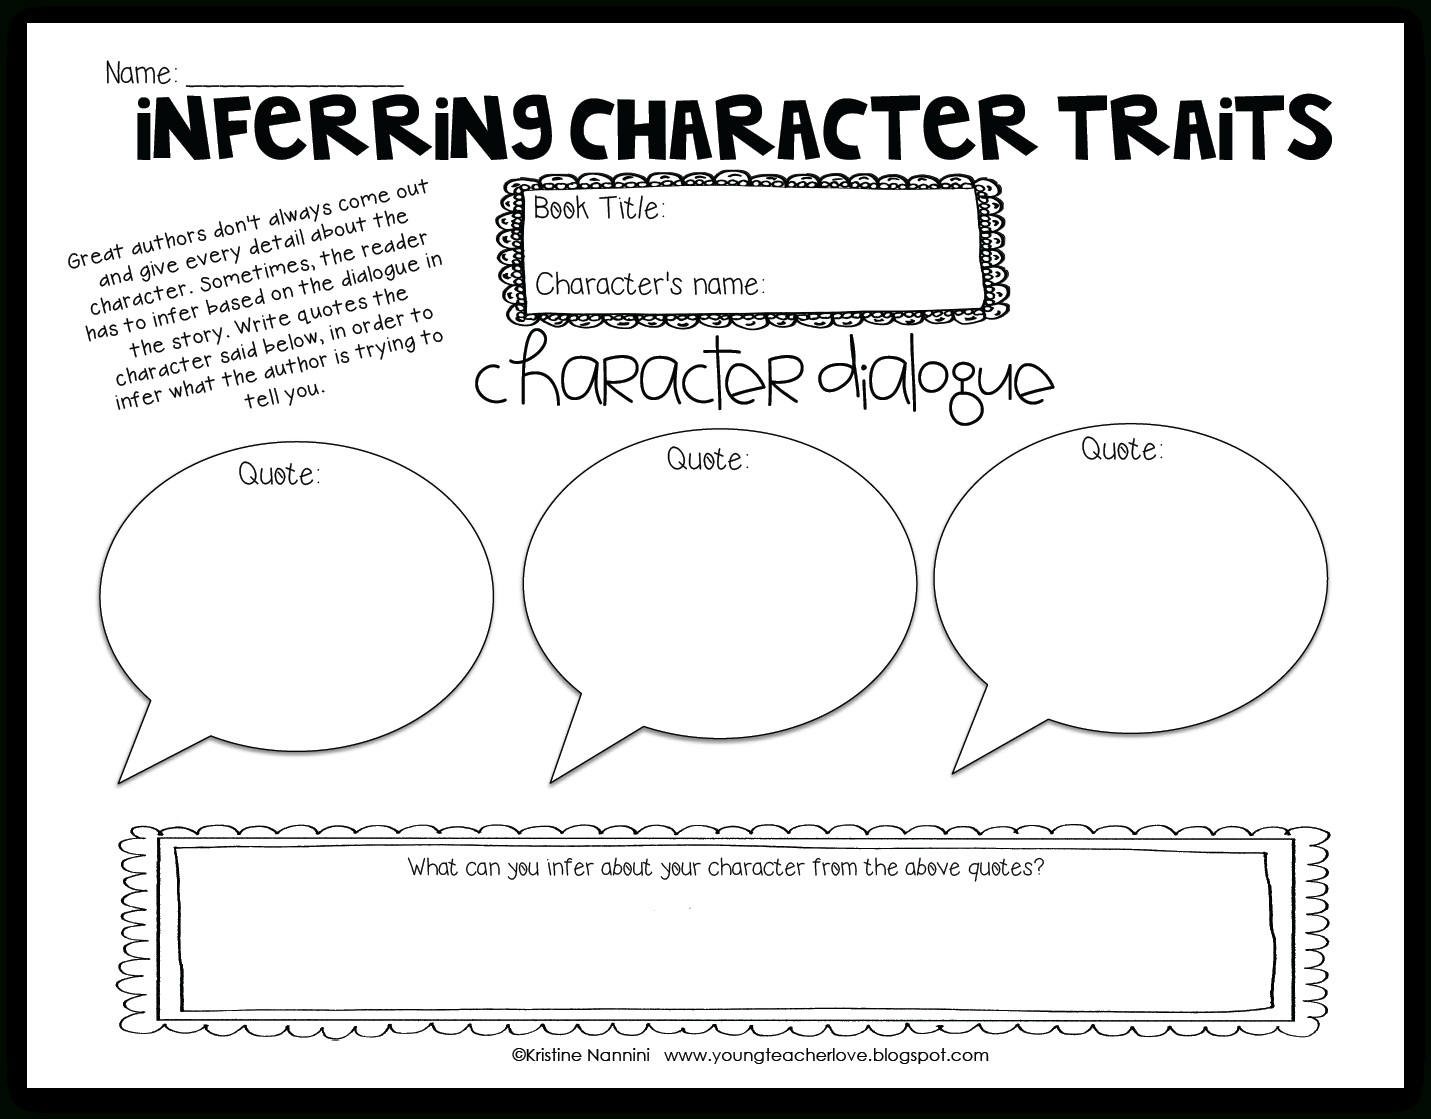 Free Printable Character Traits Graphic Organizer